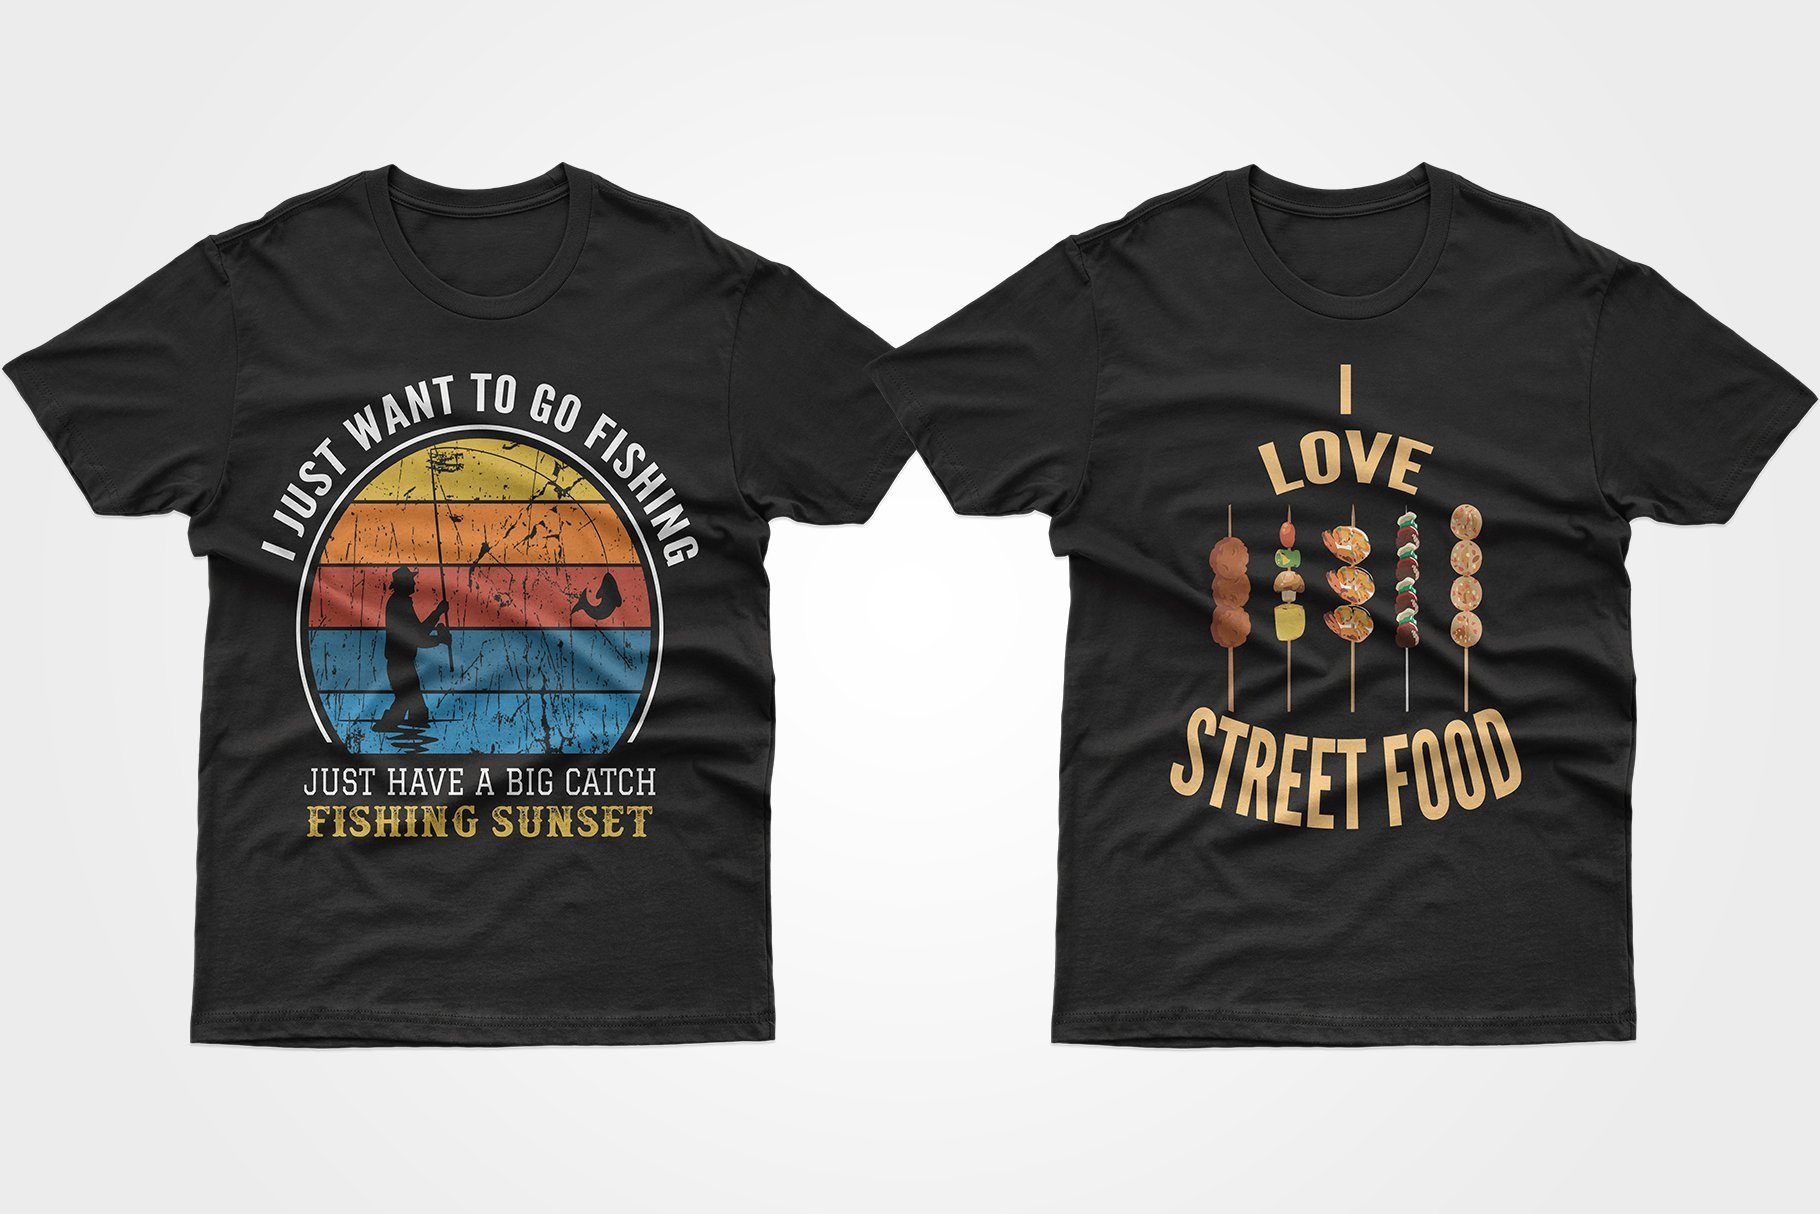 Two black T-shirts - one with a fisherman, the other with kebabs.